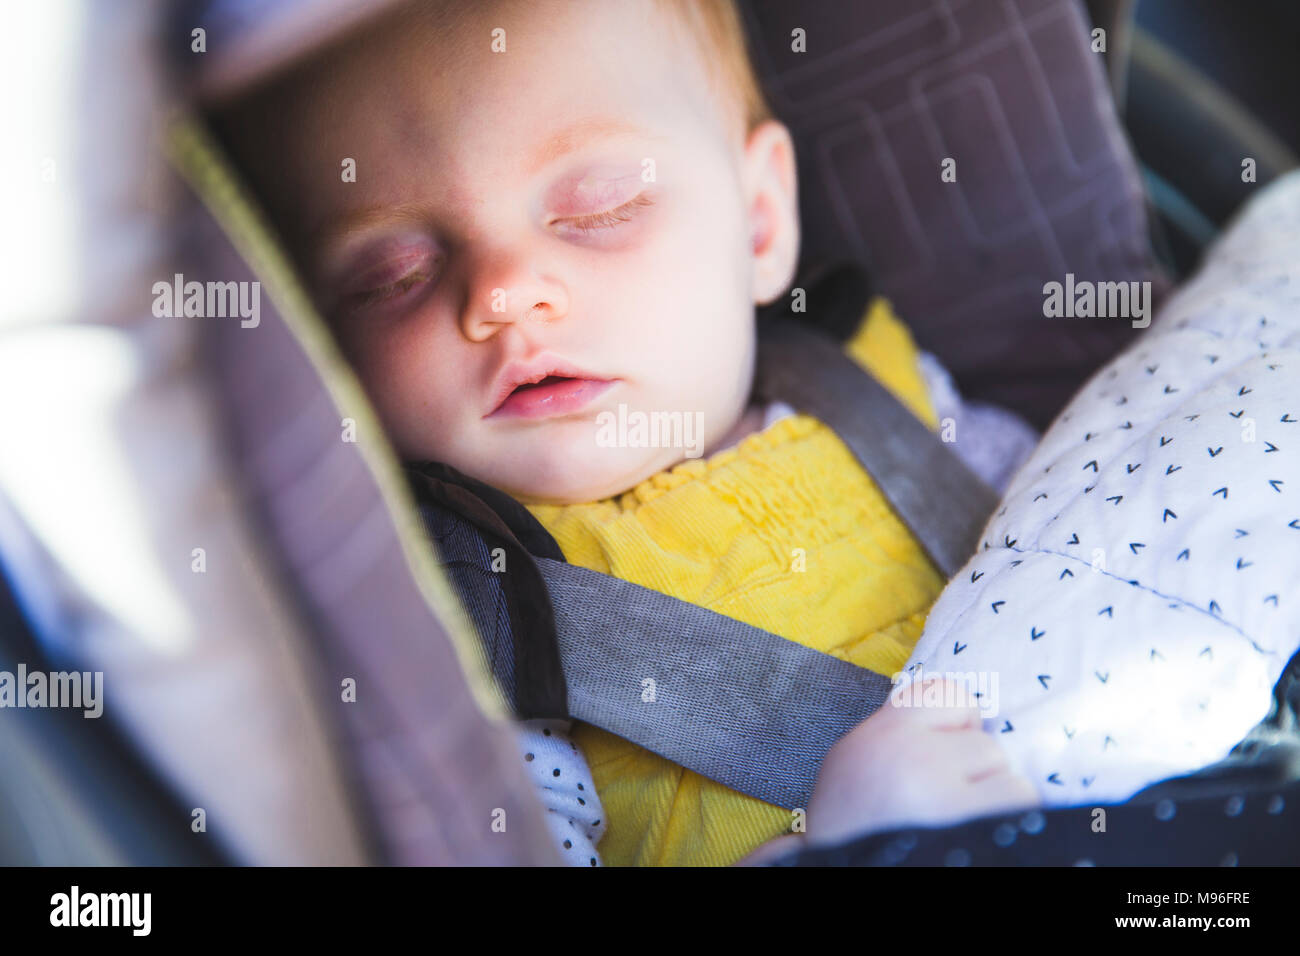 Child asleep in car seat - Stock Image